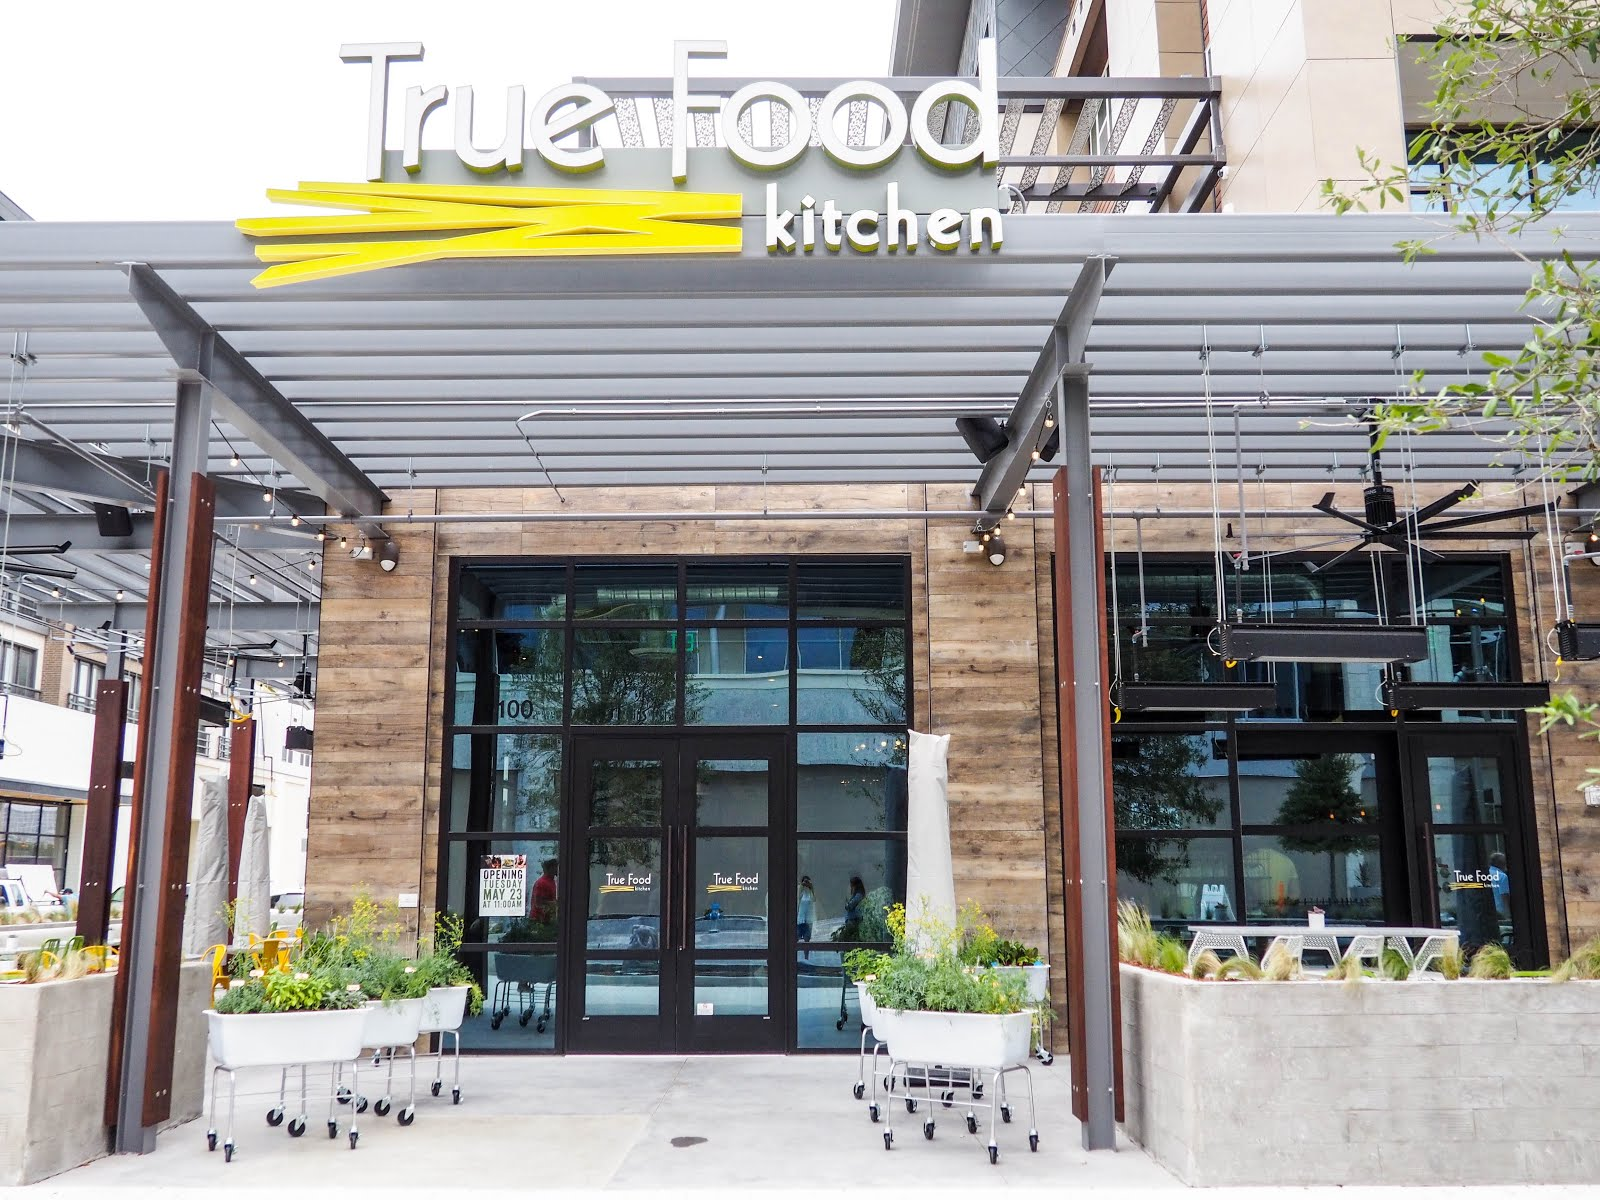 True Food Kitchens Newest Location at Legacy West Finding Dallas